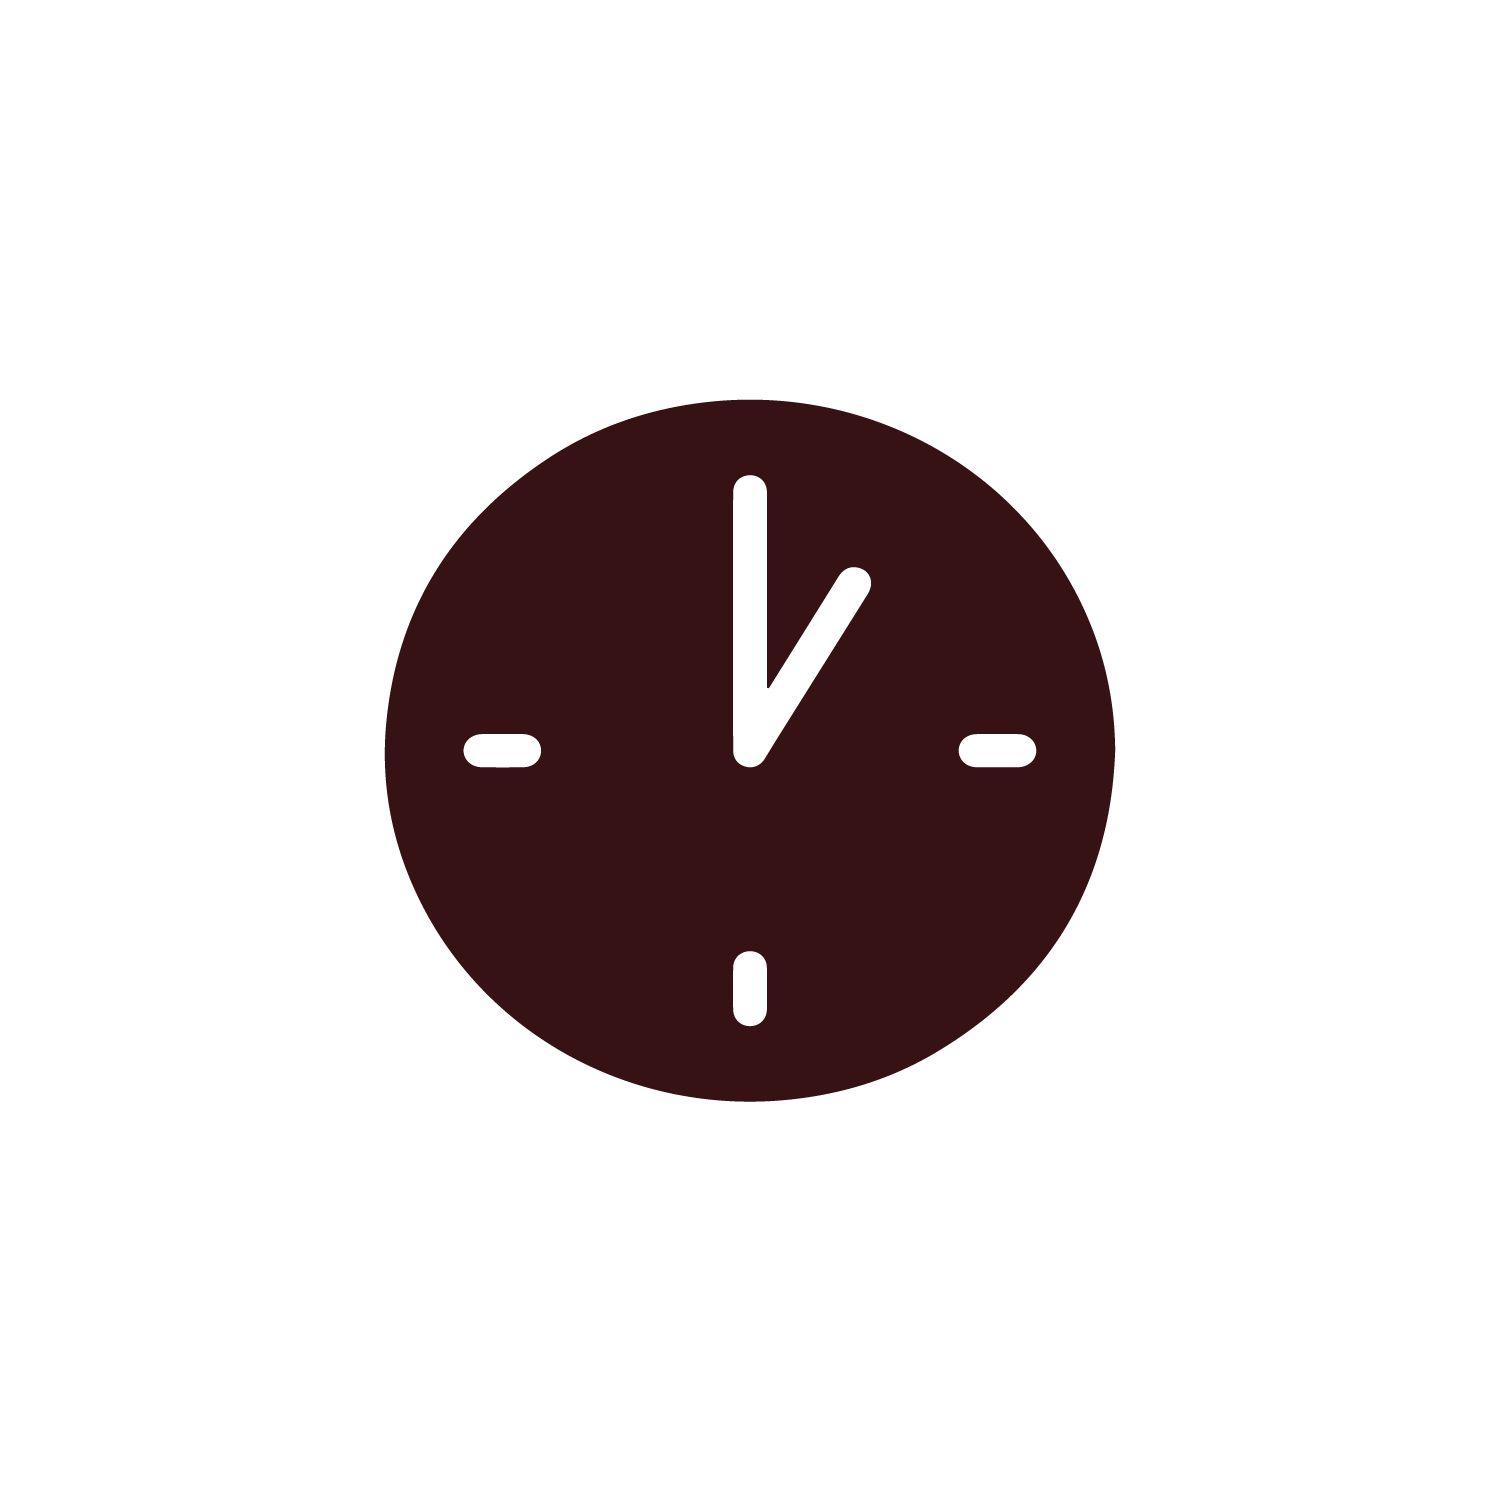 """Clock"" icon by Artdabana@design, from thenounproject.com"